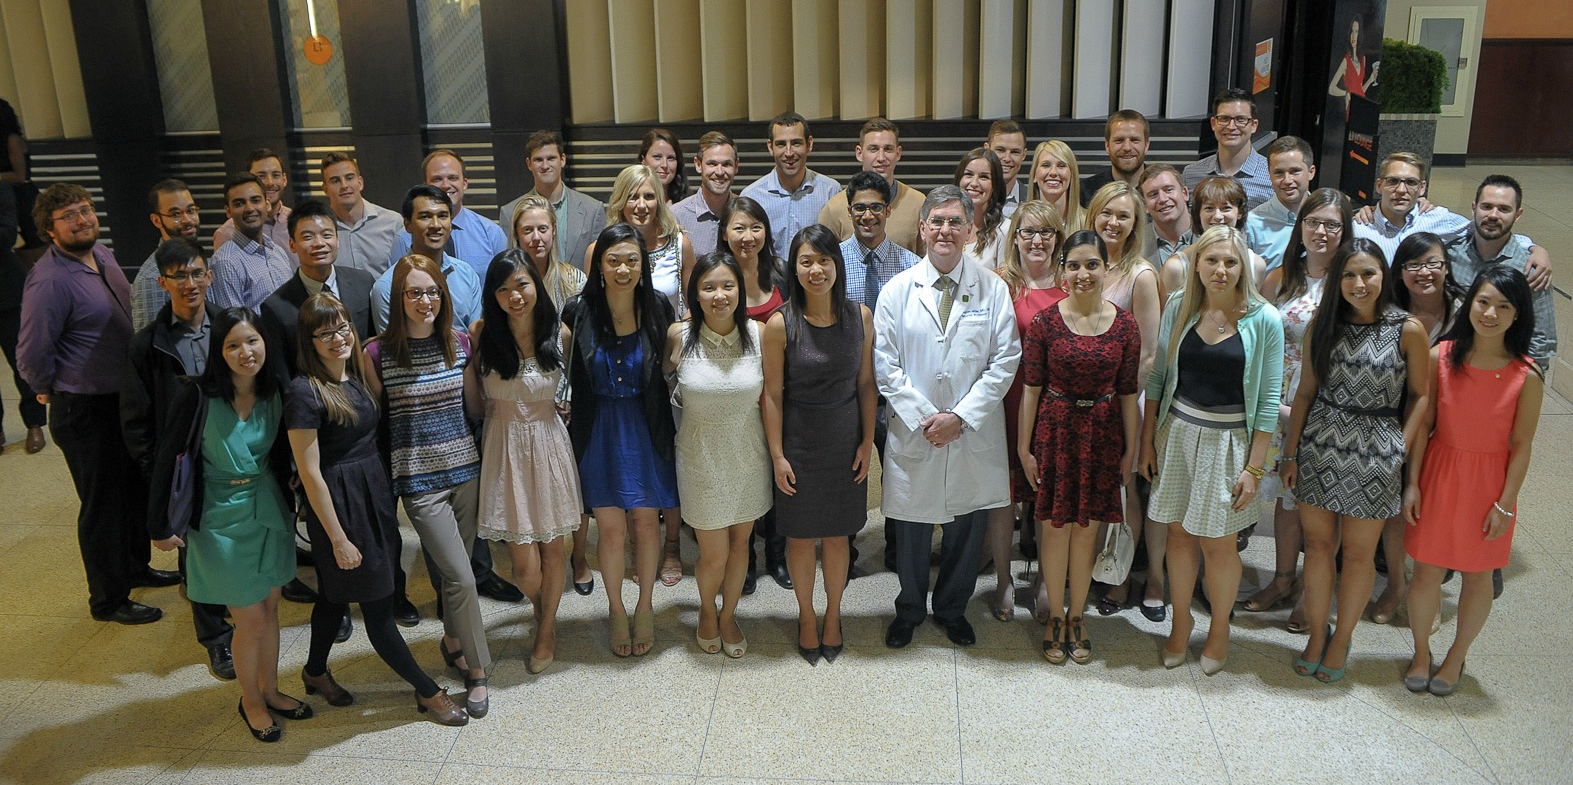 The medical graduates of 2014 who are choosing careers as family doctors, with dean of medicine and dentistry D. Douglas Miller.